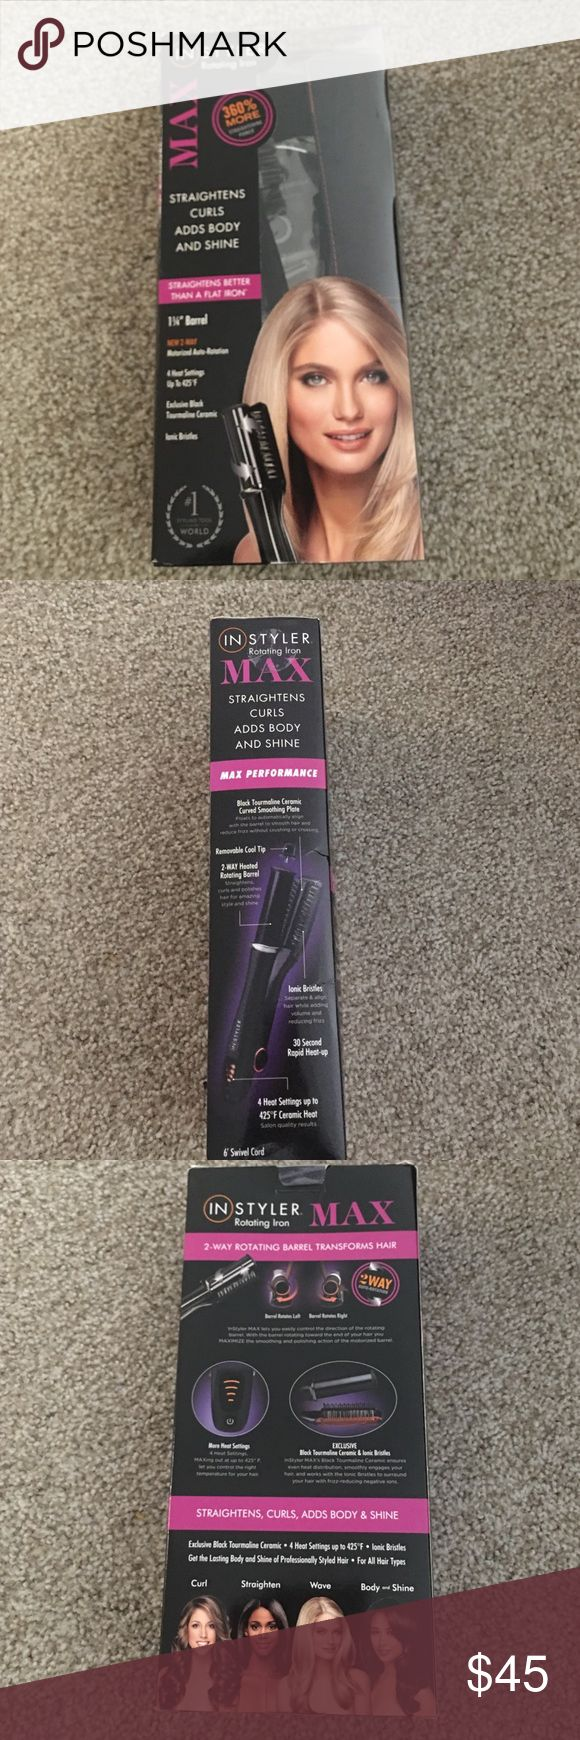 Instyler rotating iron Instyler Max rotating iron Accessories Hair Accessories